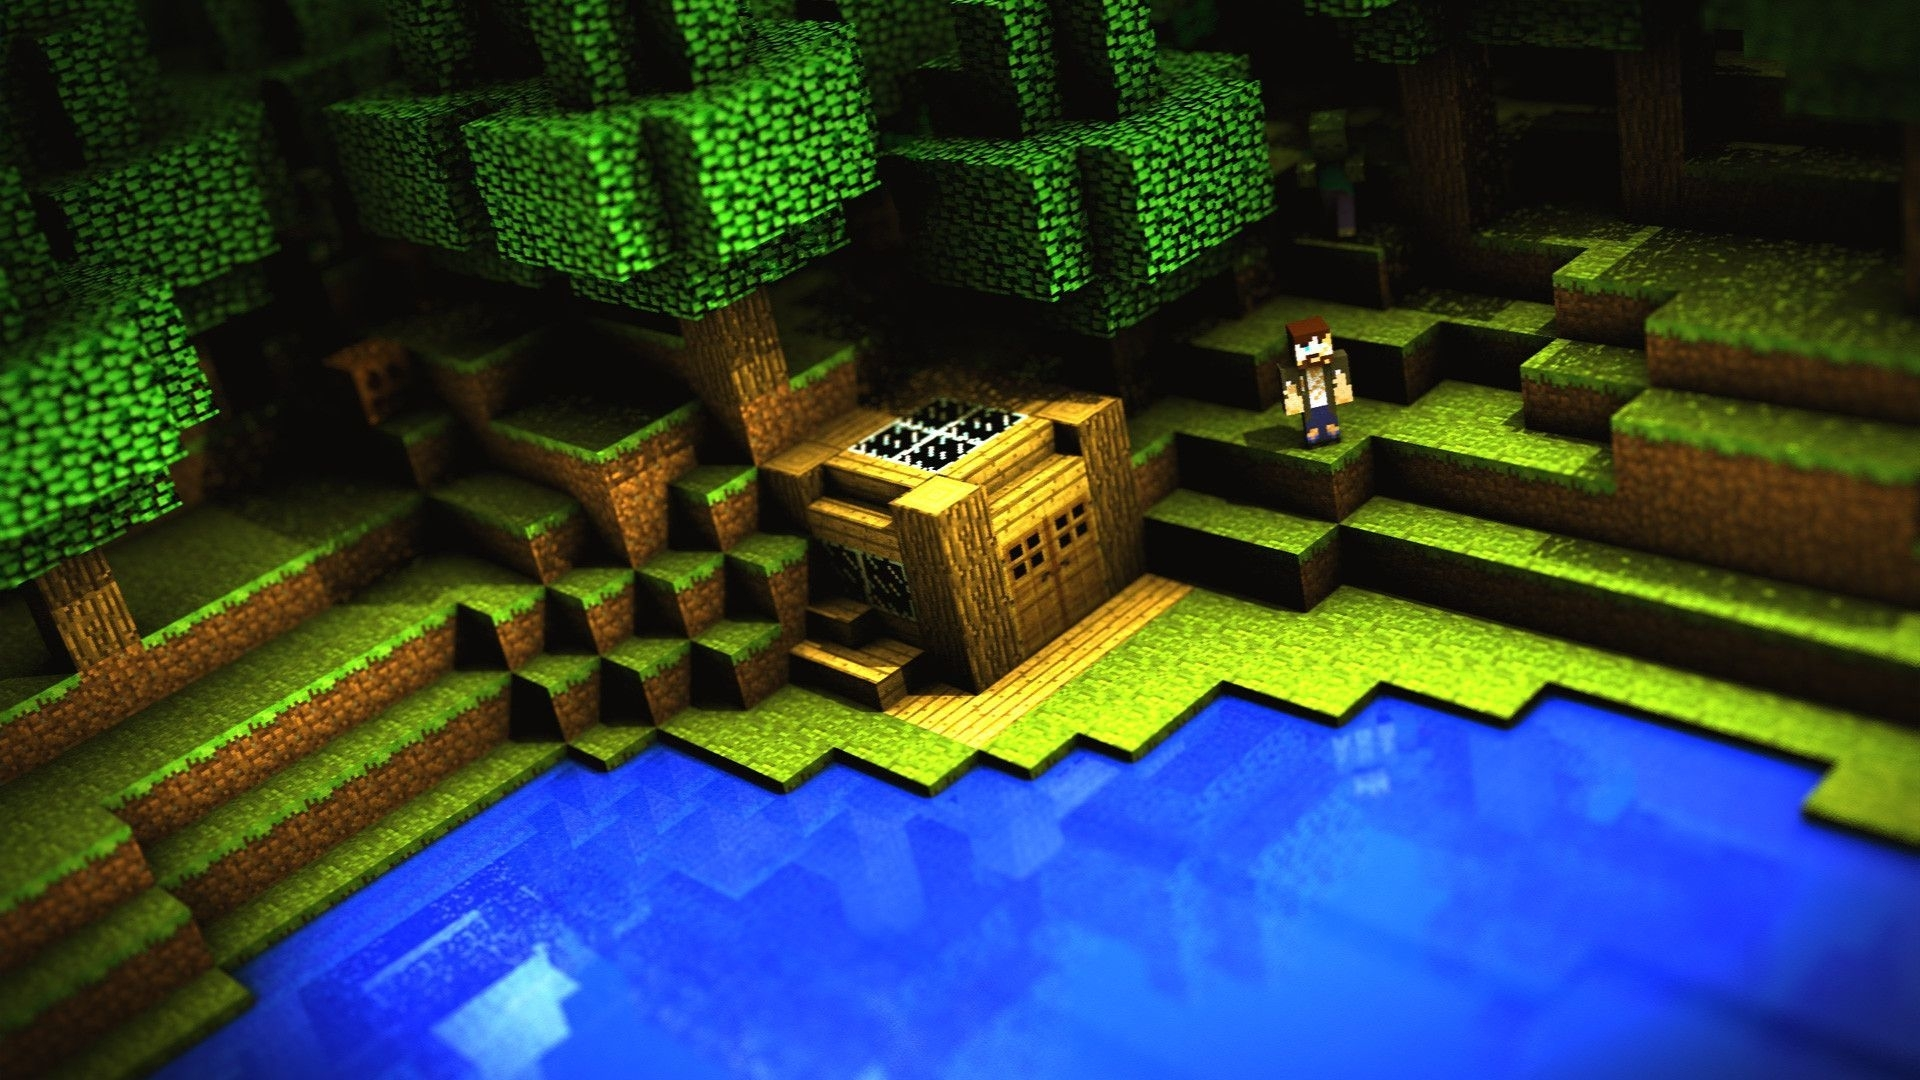 cool minecraft wallpapers hd - wallpaper cave | free wallpapers